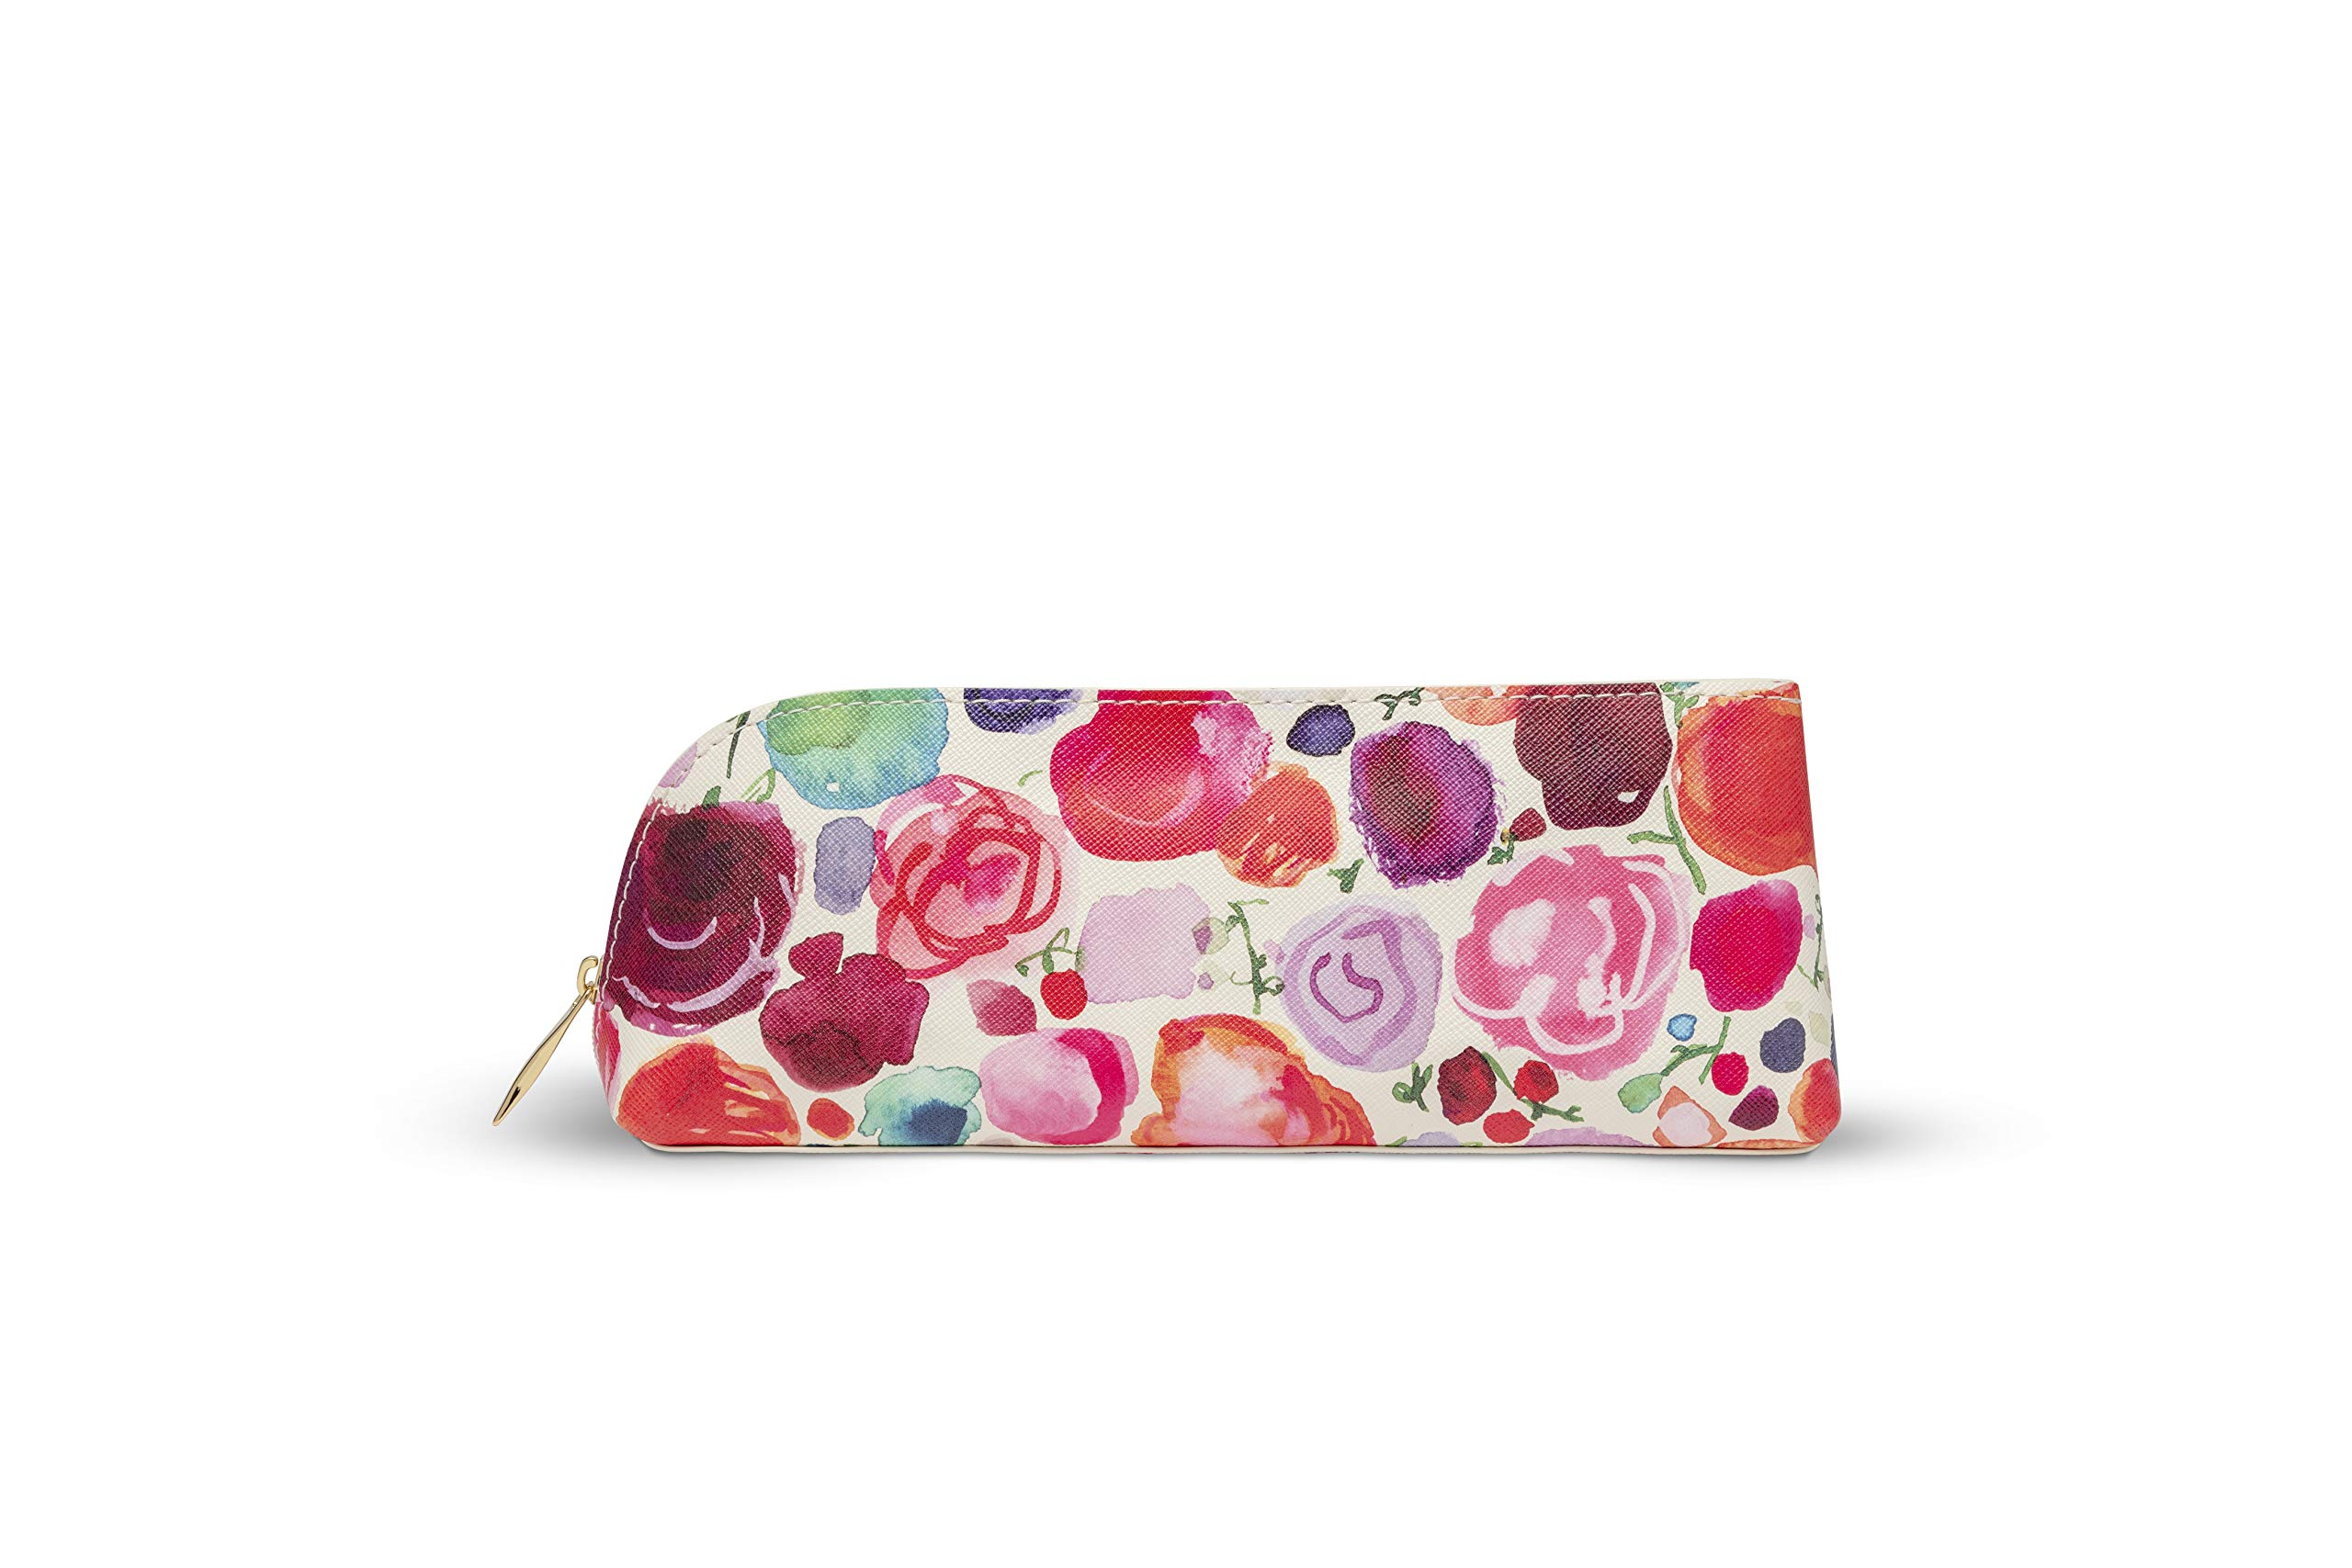 Kate Spade New York Women's Floral Pencil Case Multi One Size